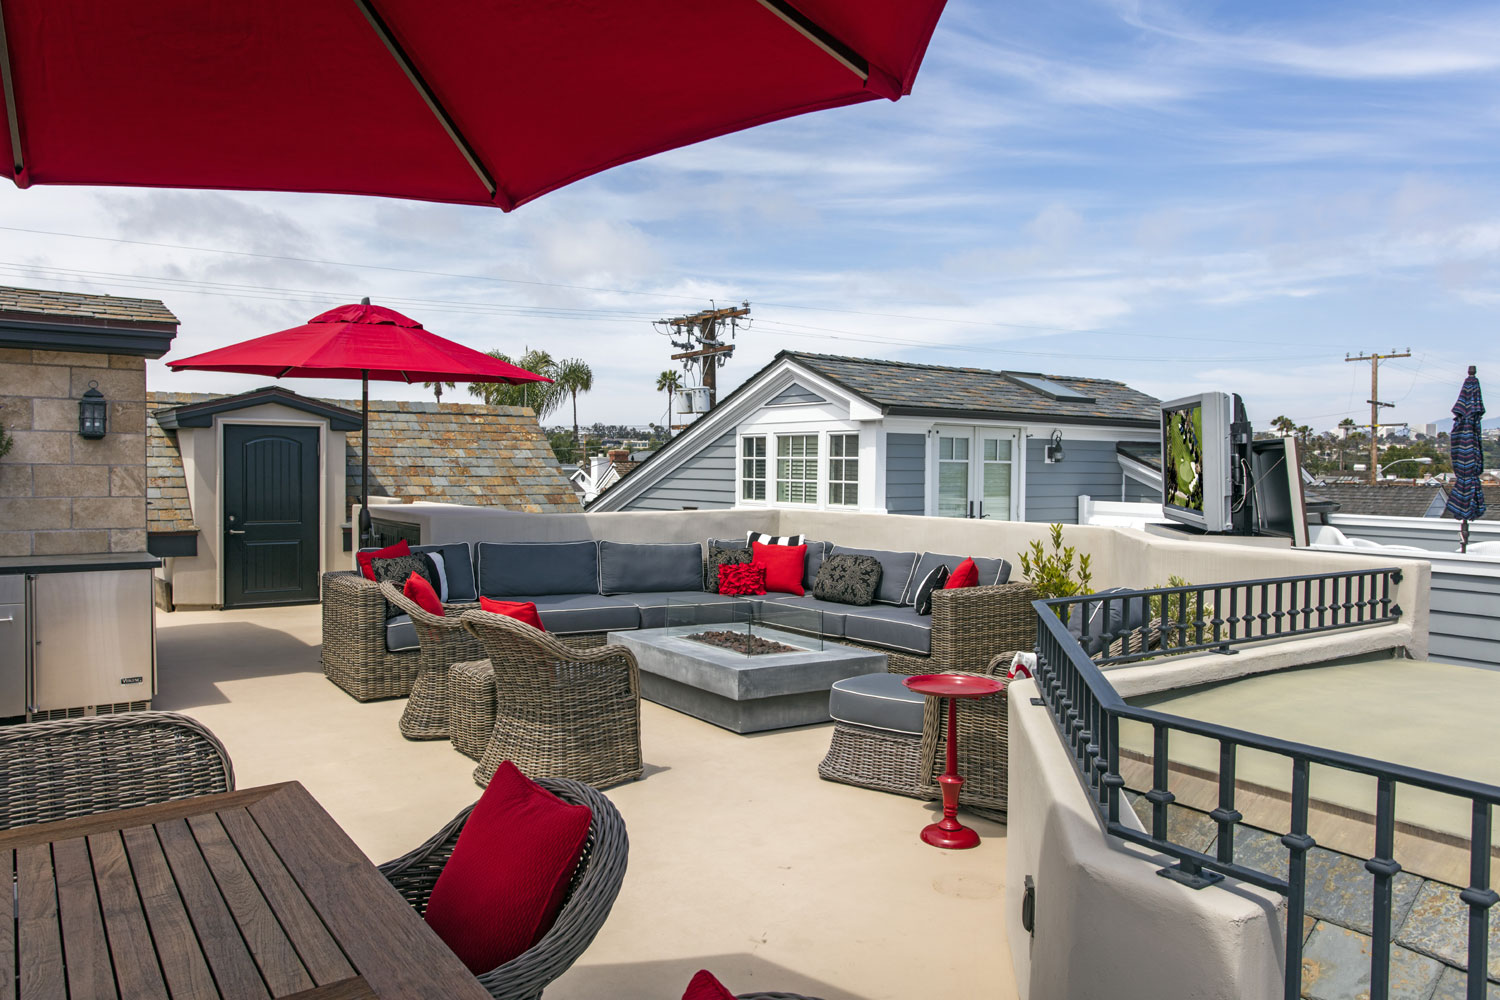 Bay views are in competition with the on-screen action at this home's entertaining area, complete with HDTV, fireplace, lounge, dining area, and commercial-grade grilling station.